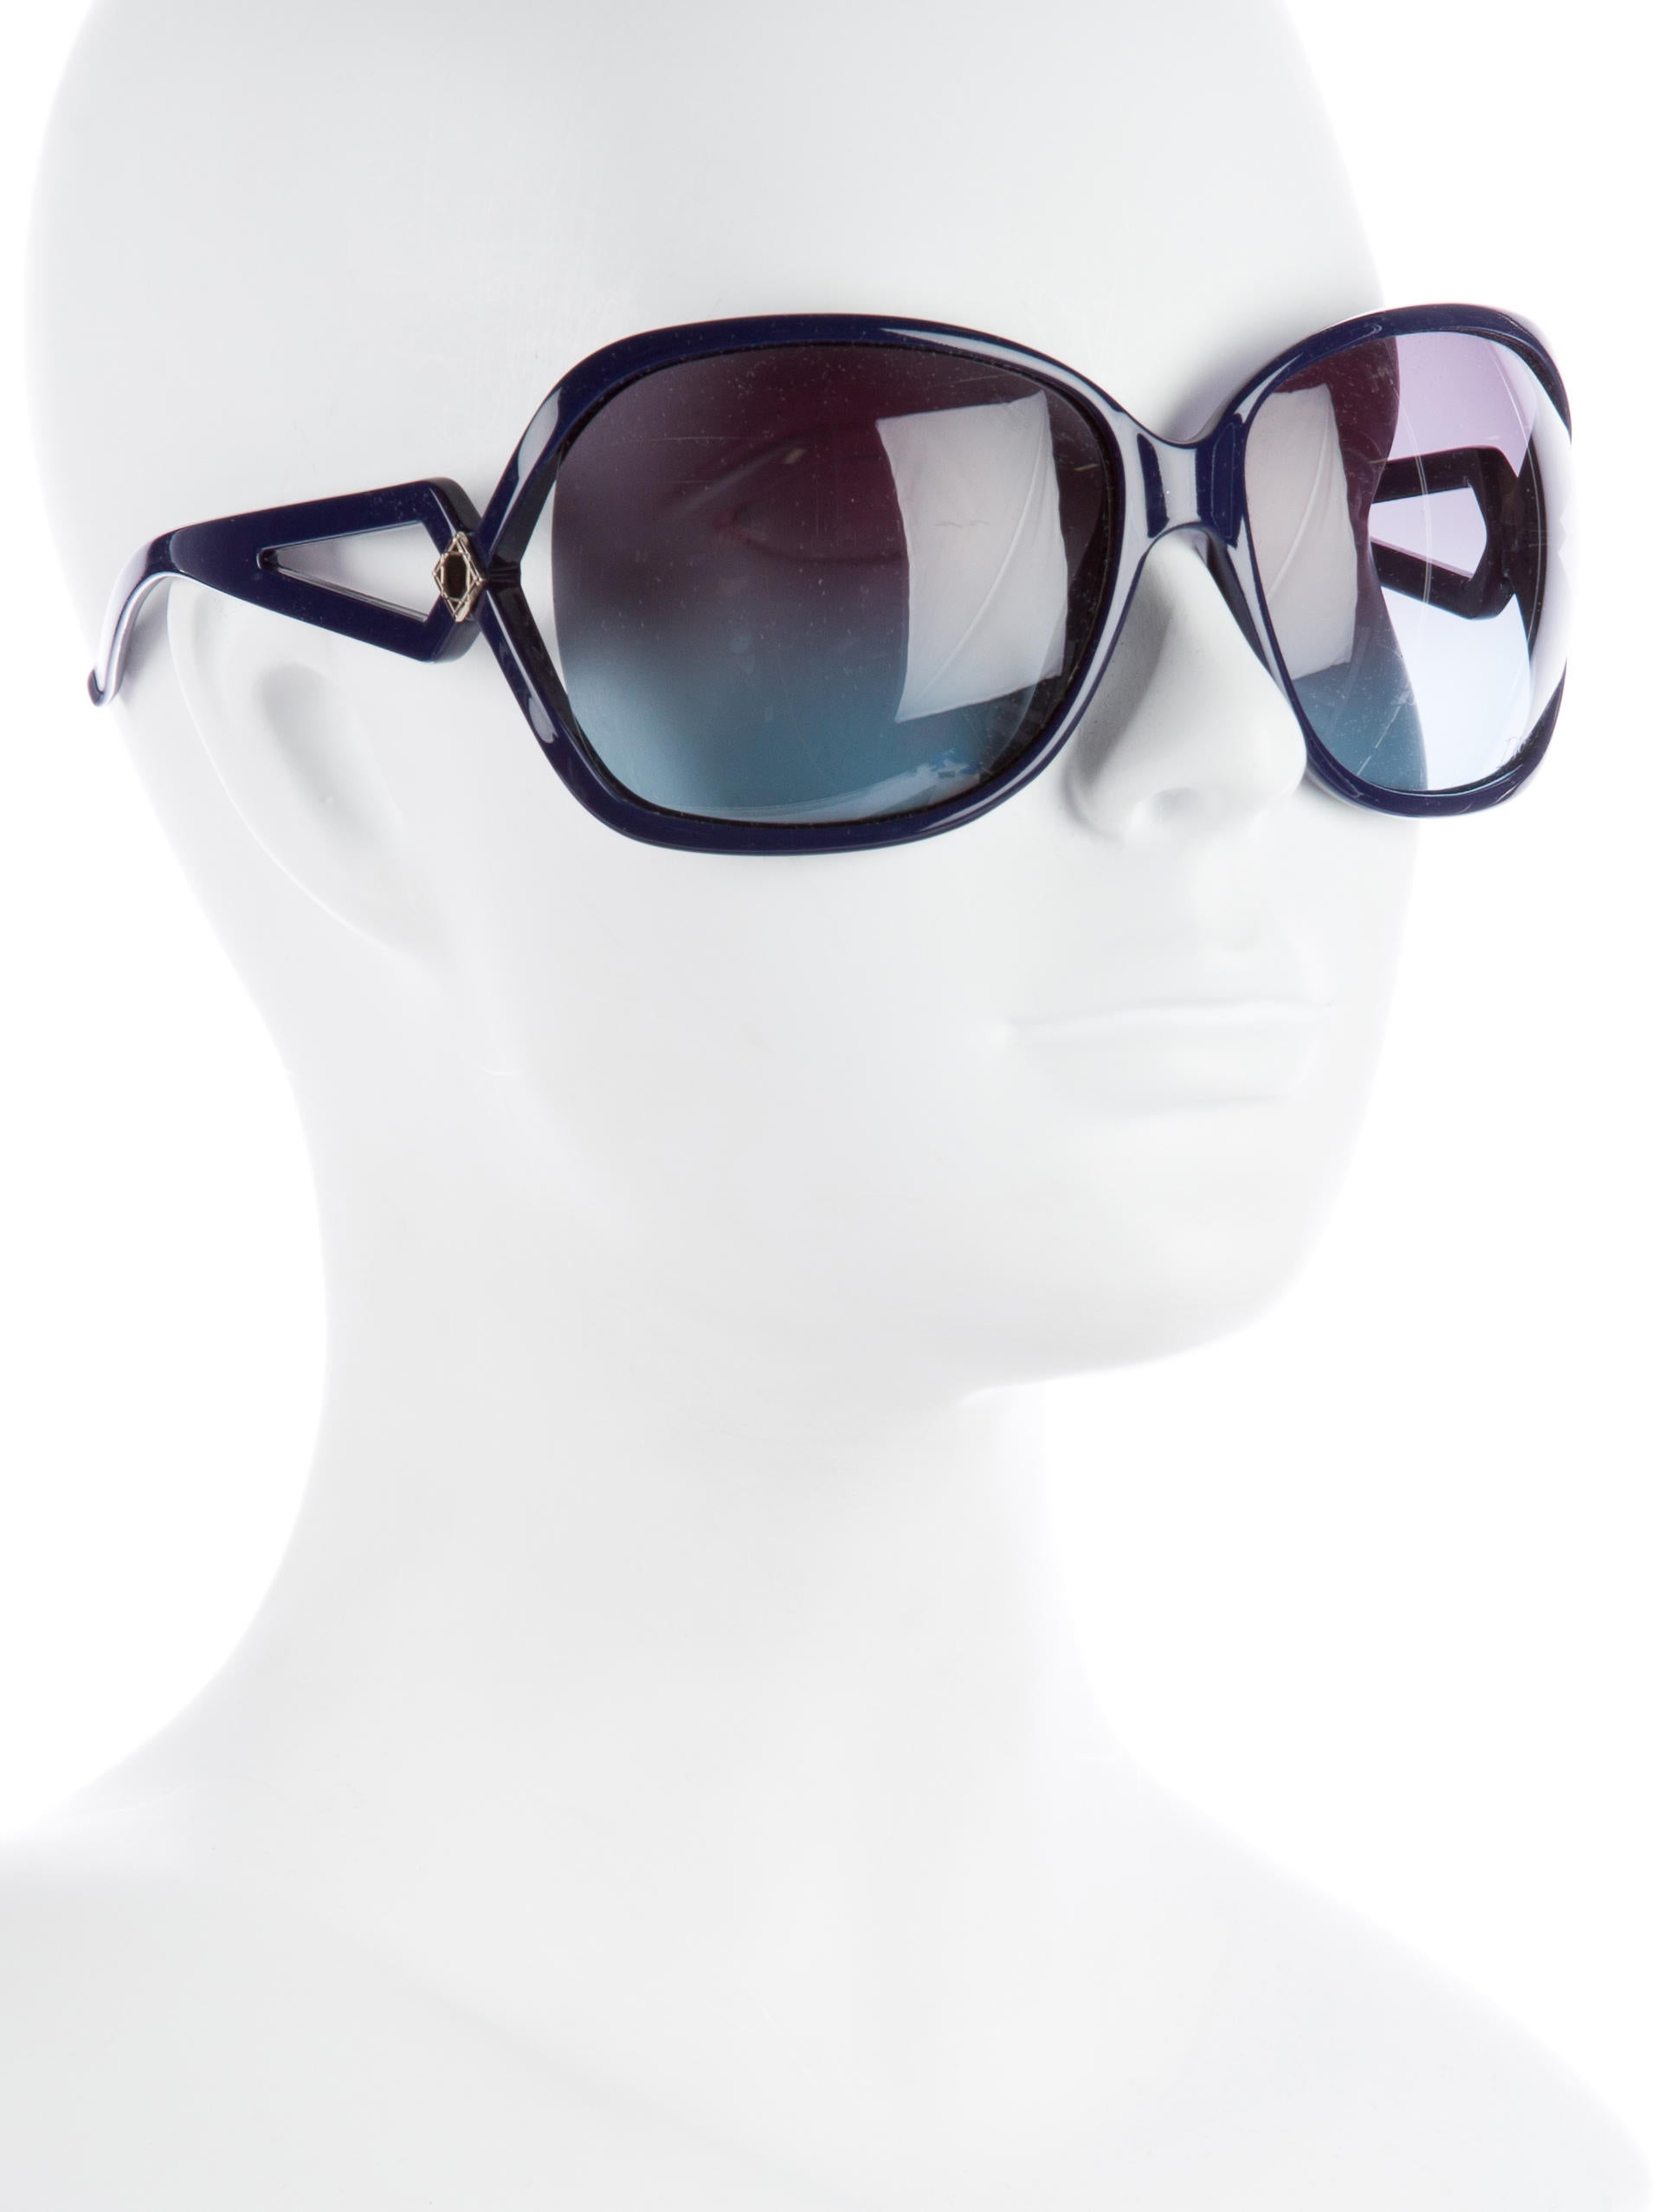 dae7986d184 Christian Dior Butterfly Sunglasses